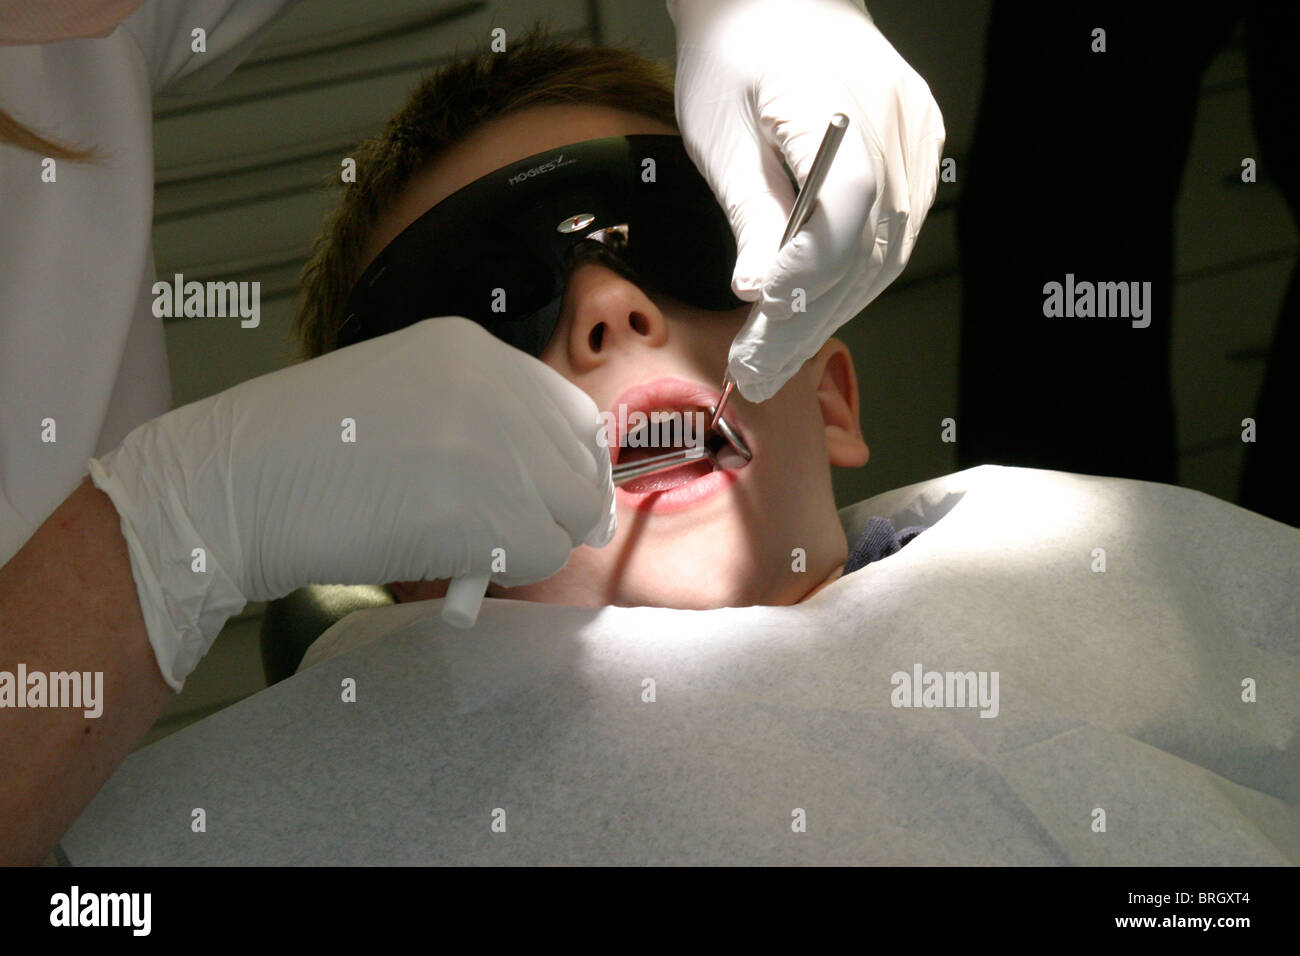 Young child having dental check-up  inspecting teeth and  checking hygiene - Stock Image